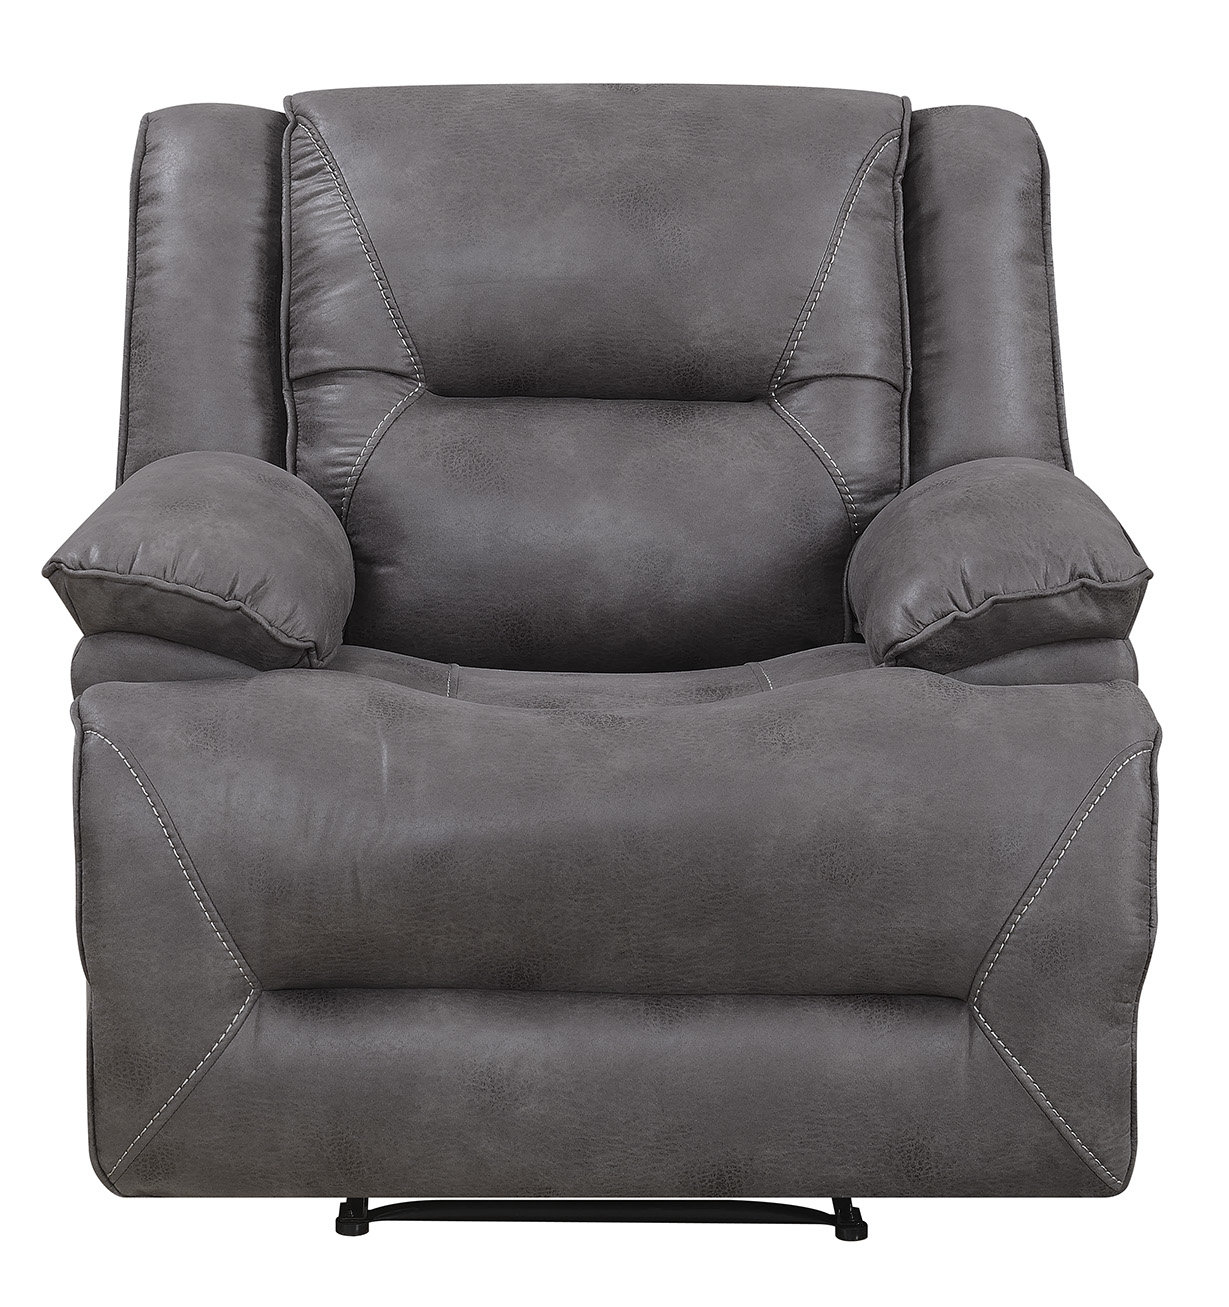 Darby Home Co Finlay Recliner | Wayfair In Dale Iii Polyurethane Swivel Glider Recliners (Photo 8 of 20)